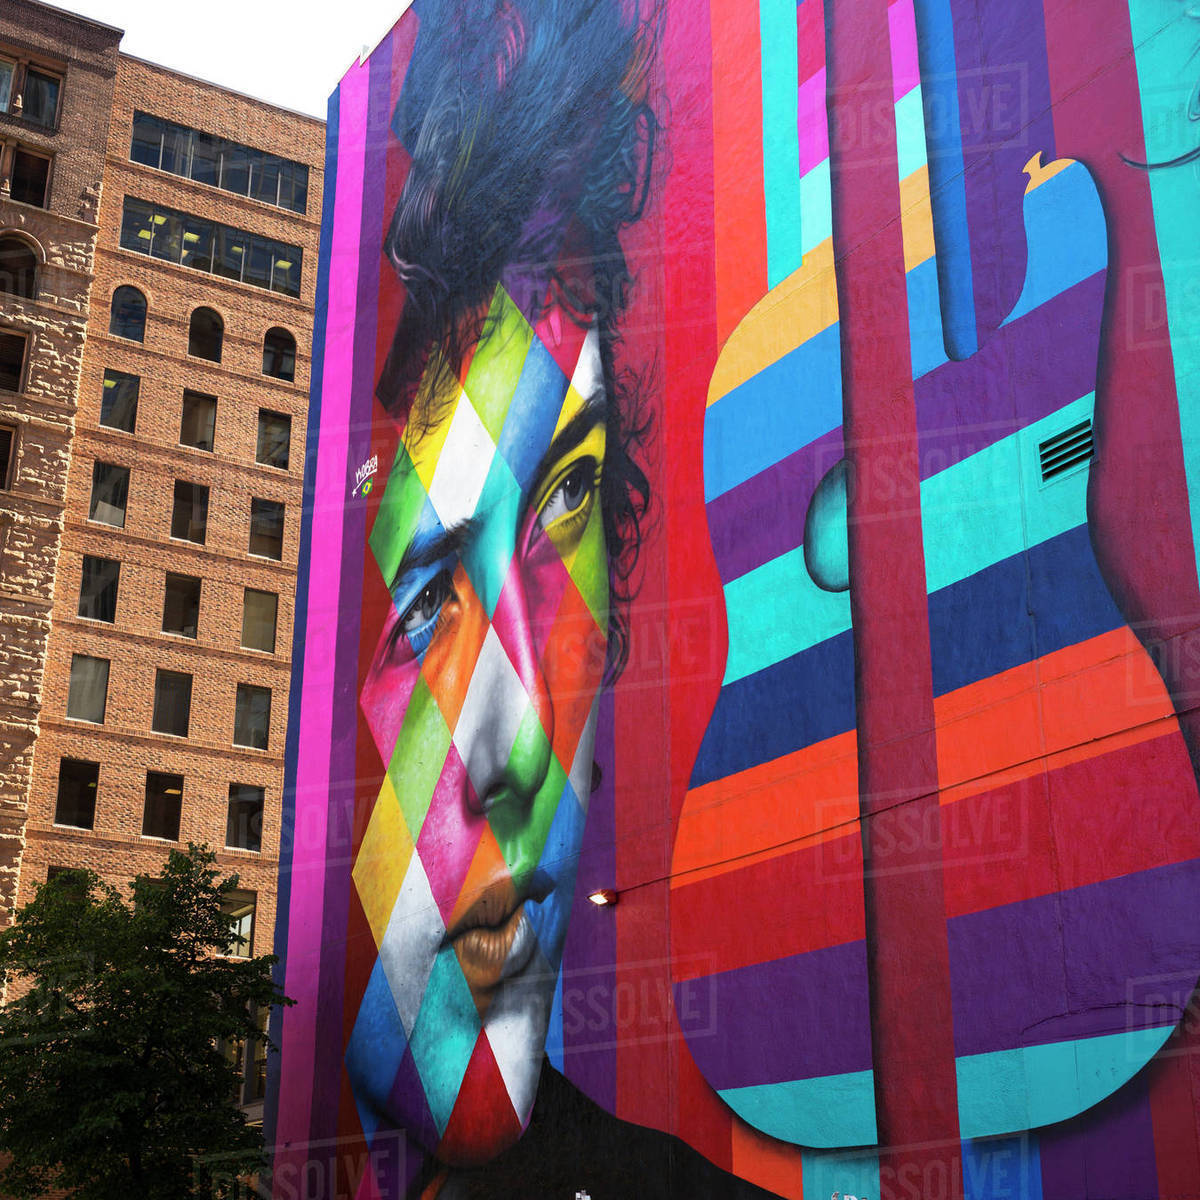 Colourful Mural On The Side Of A Building Depicting A Man S Face And